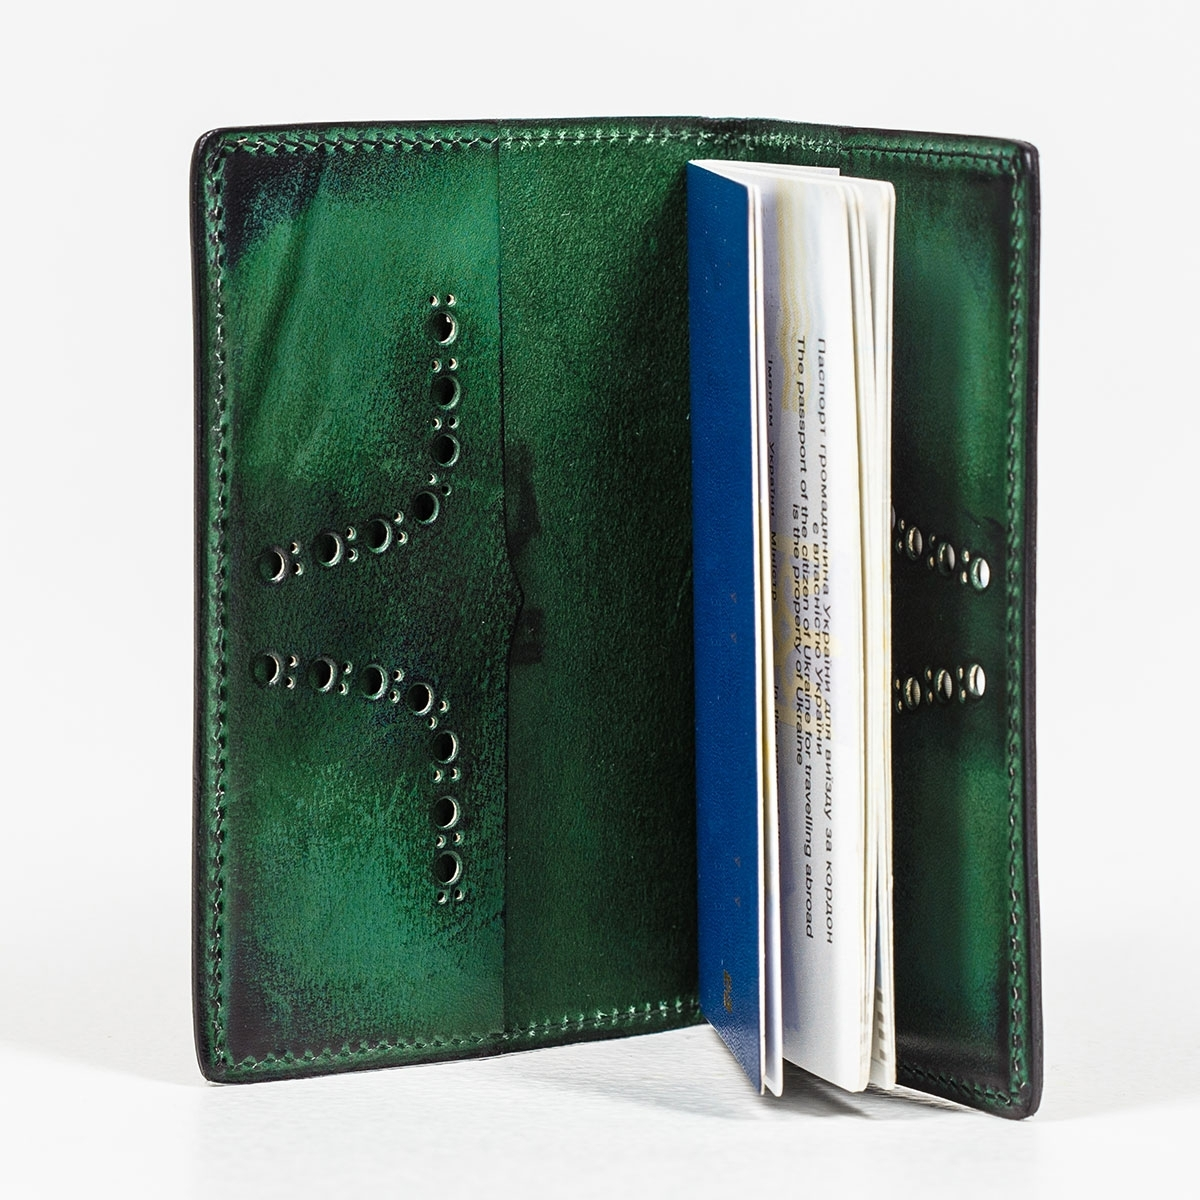 Passport cover CYNARA violet ink & grassy green